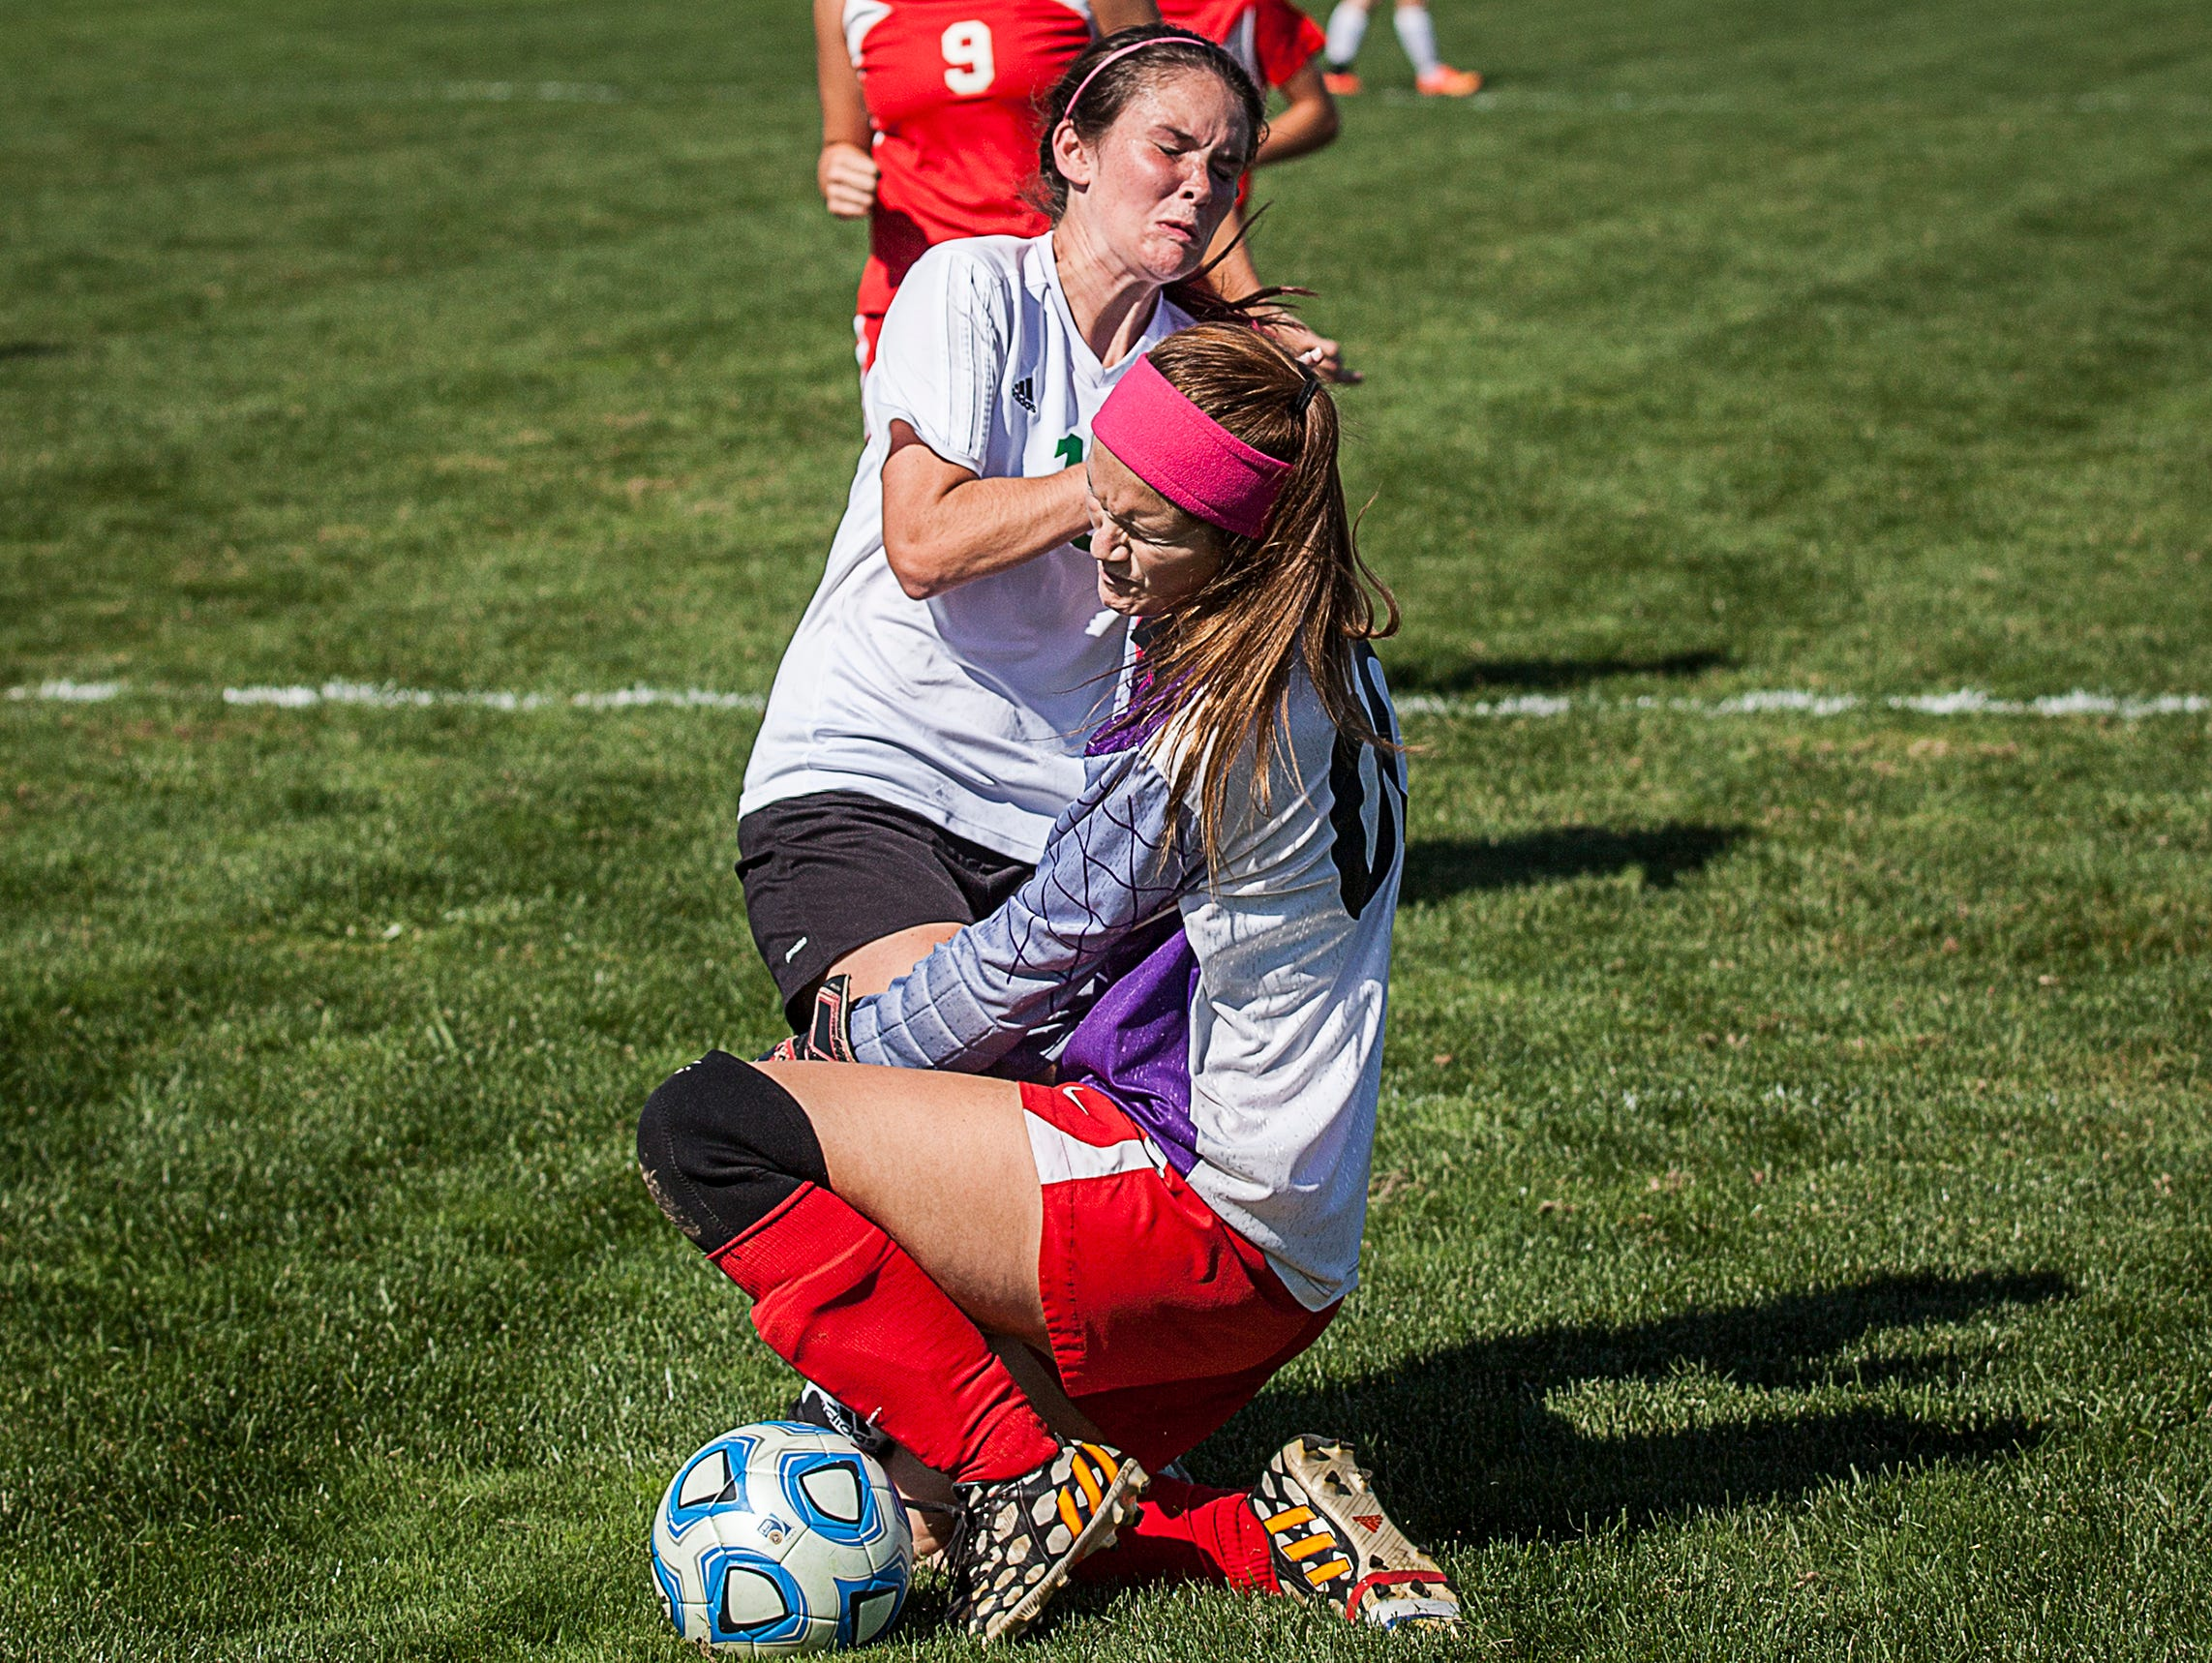 Yorktown's Lizzie Smith collides with Jay County goalie Lilly Rogers during their game at the Yorktown Sports Park on Saturday, Oct. 10, 2015.